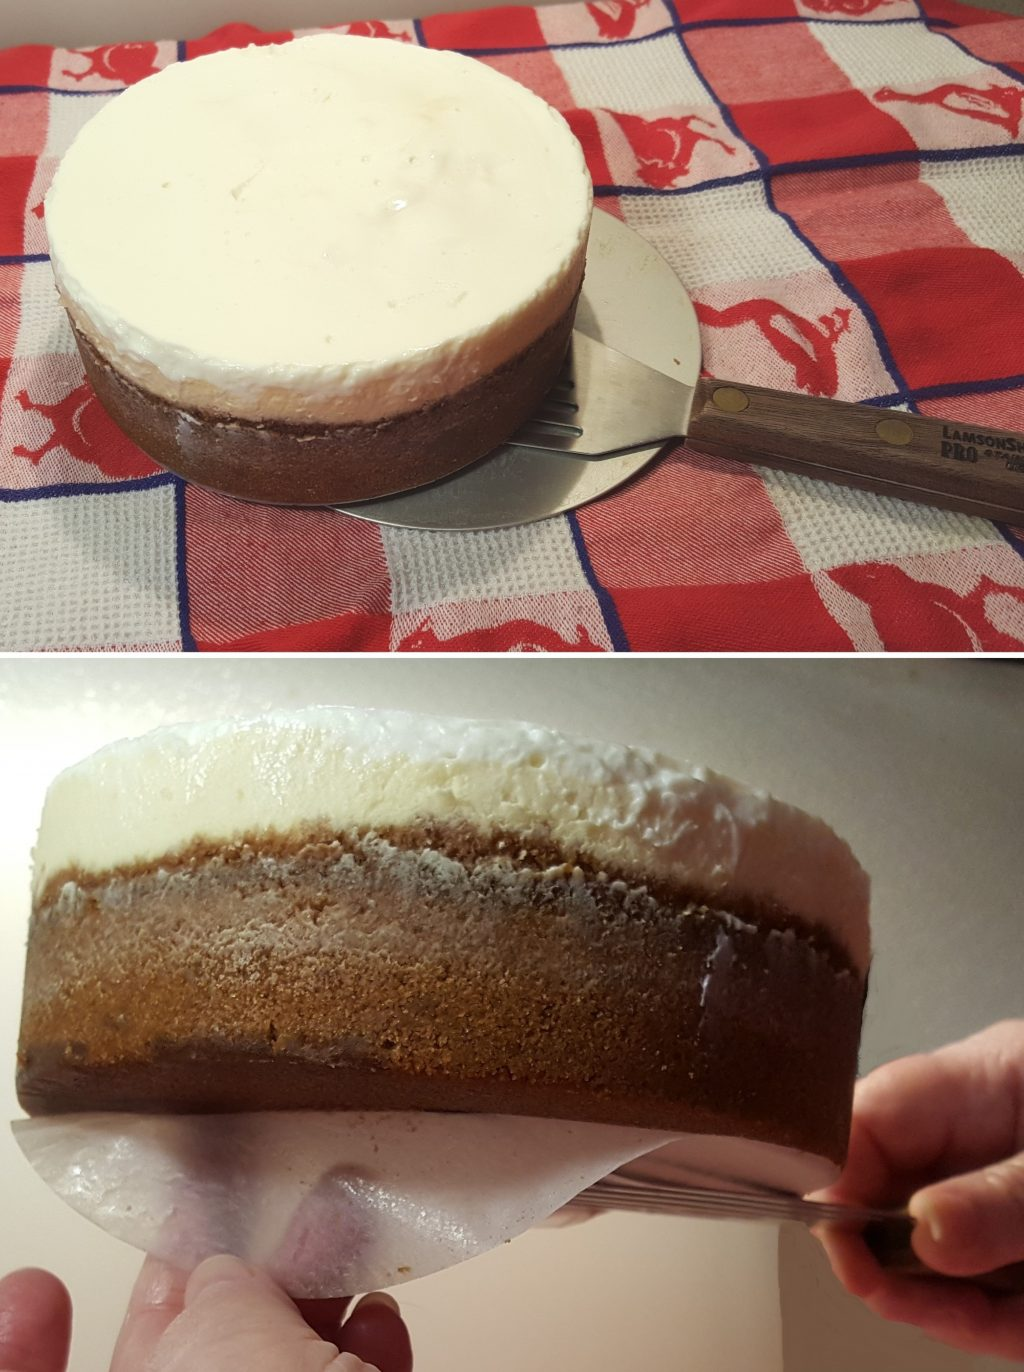 Removing Cheesecake with LamsonSharp Chef's Slotted Turner